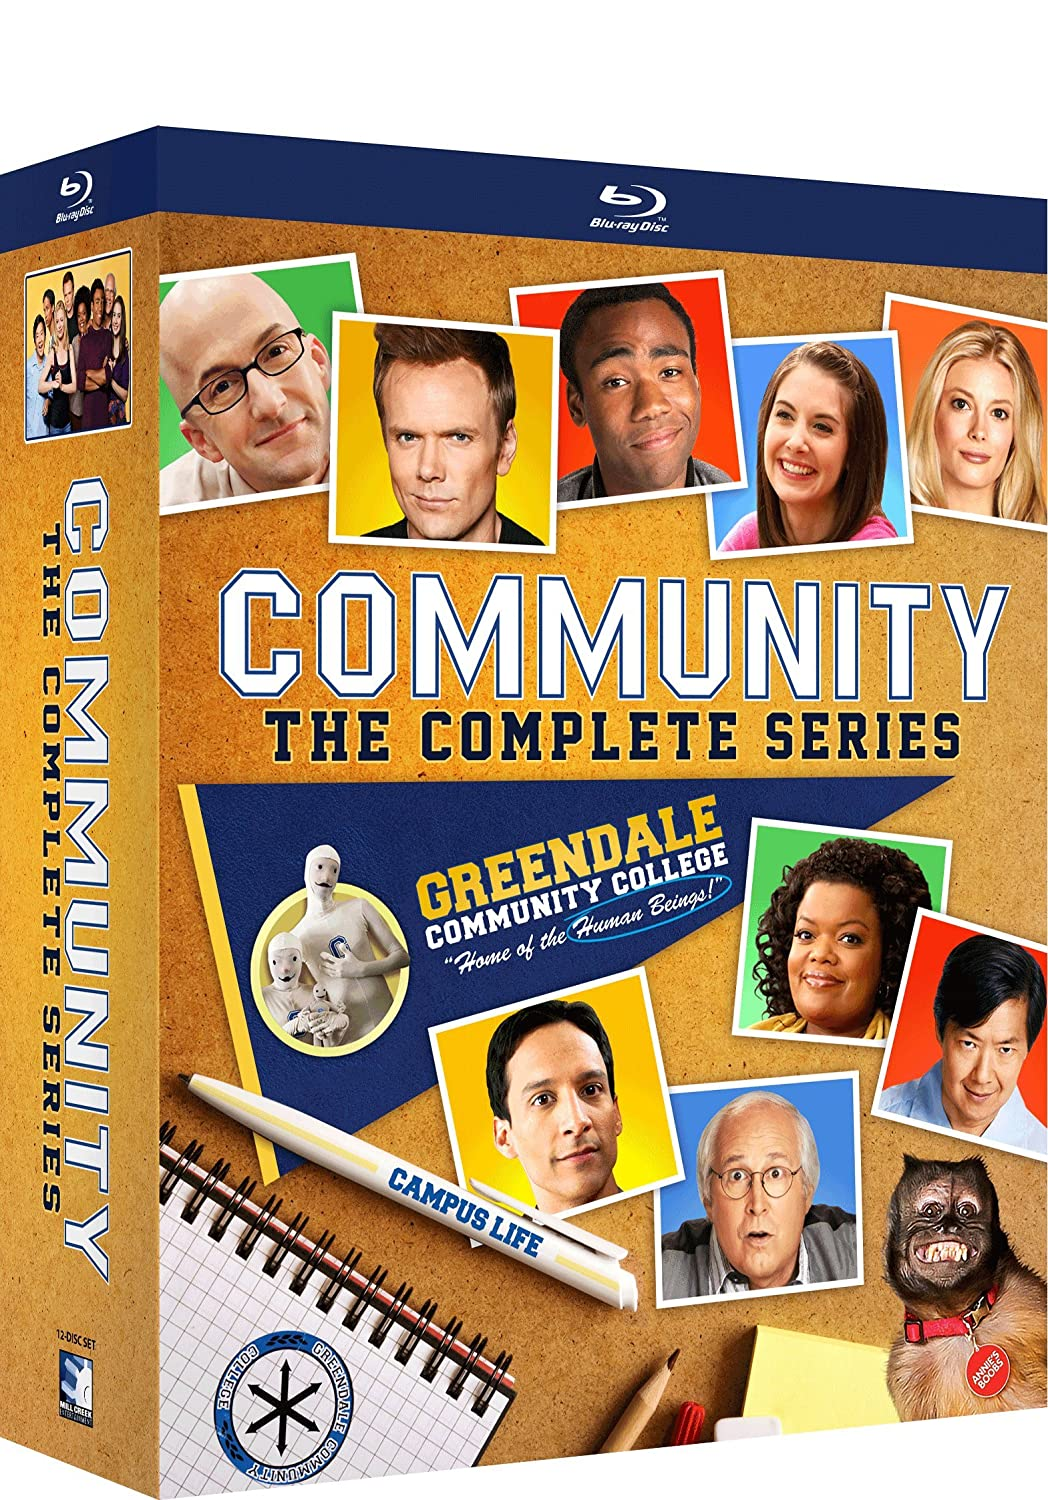 Community - The Complete Series - BD [Blu-ray] Joel McHale Chevy Chase Gillian Jacobs Alison Brie